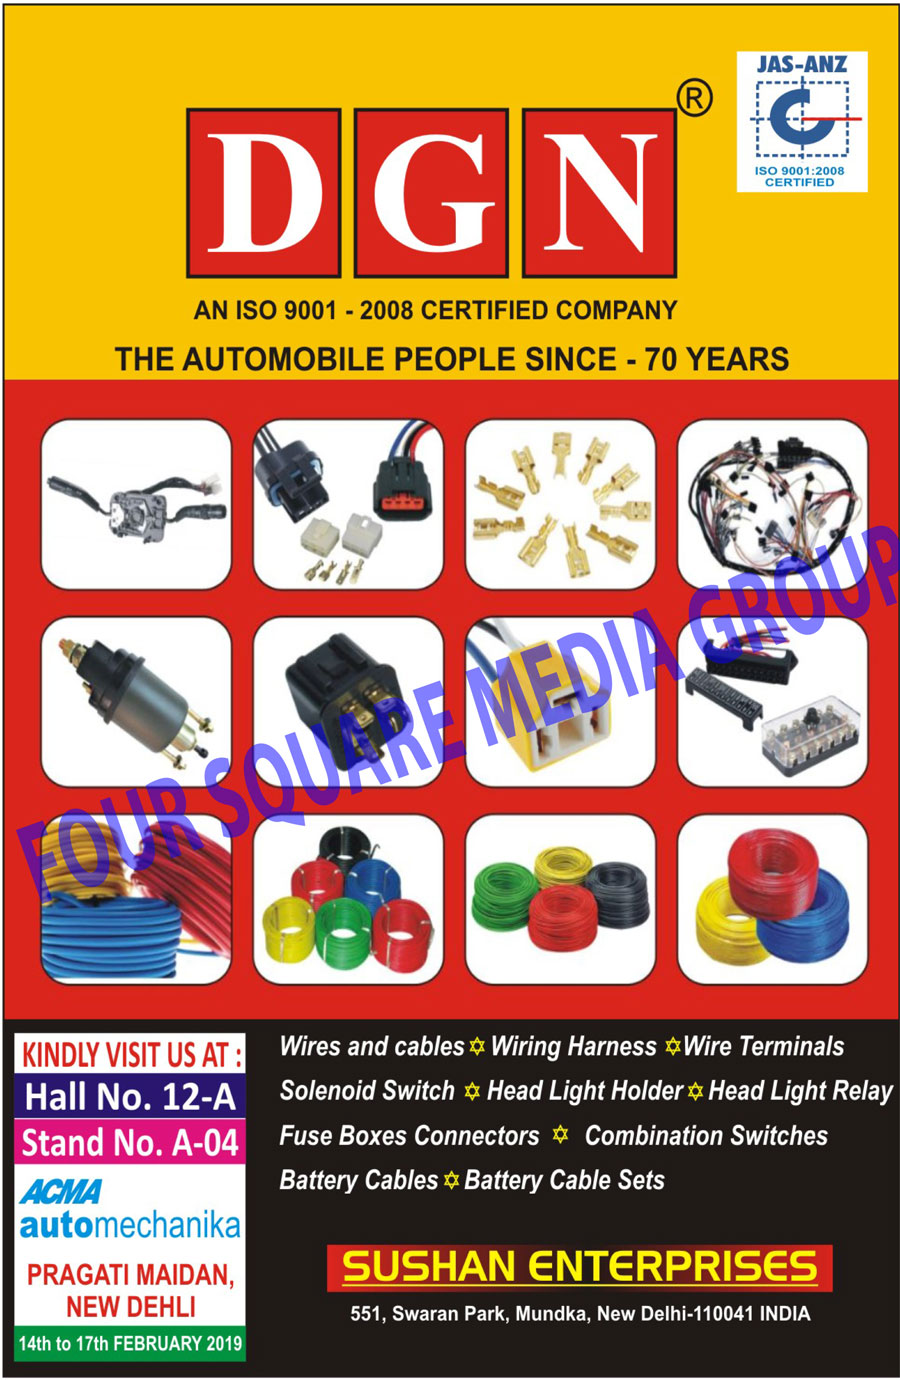 hight resolution of wires cables wiring harness wire terminal solenoid switch head light holder